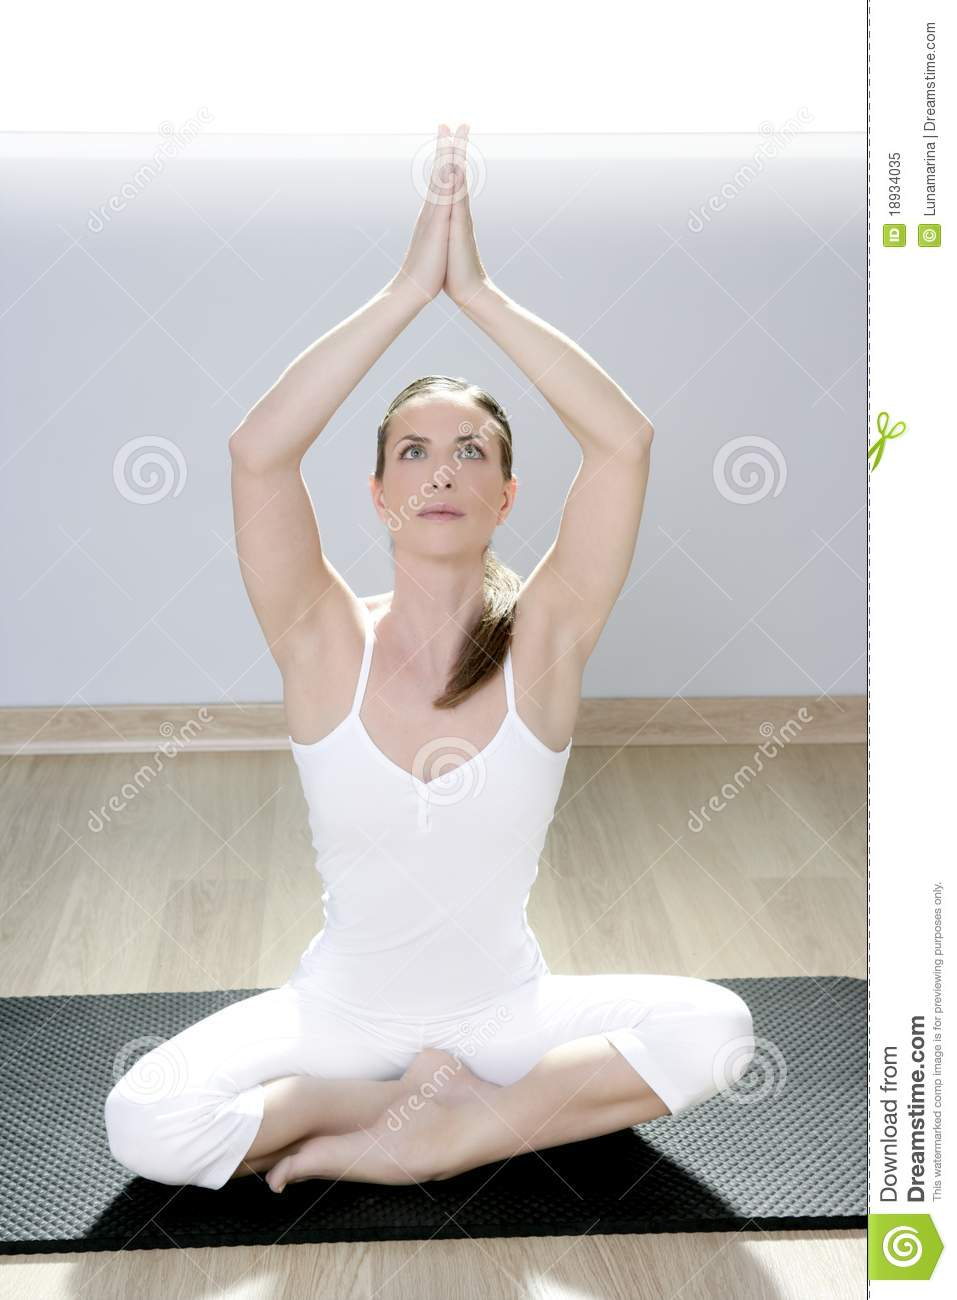 Yoga Woman Fitness Girl In White Meditation At Gym Stock